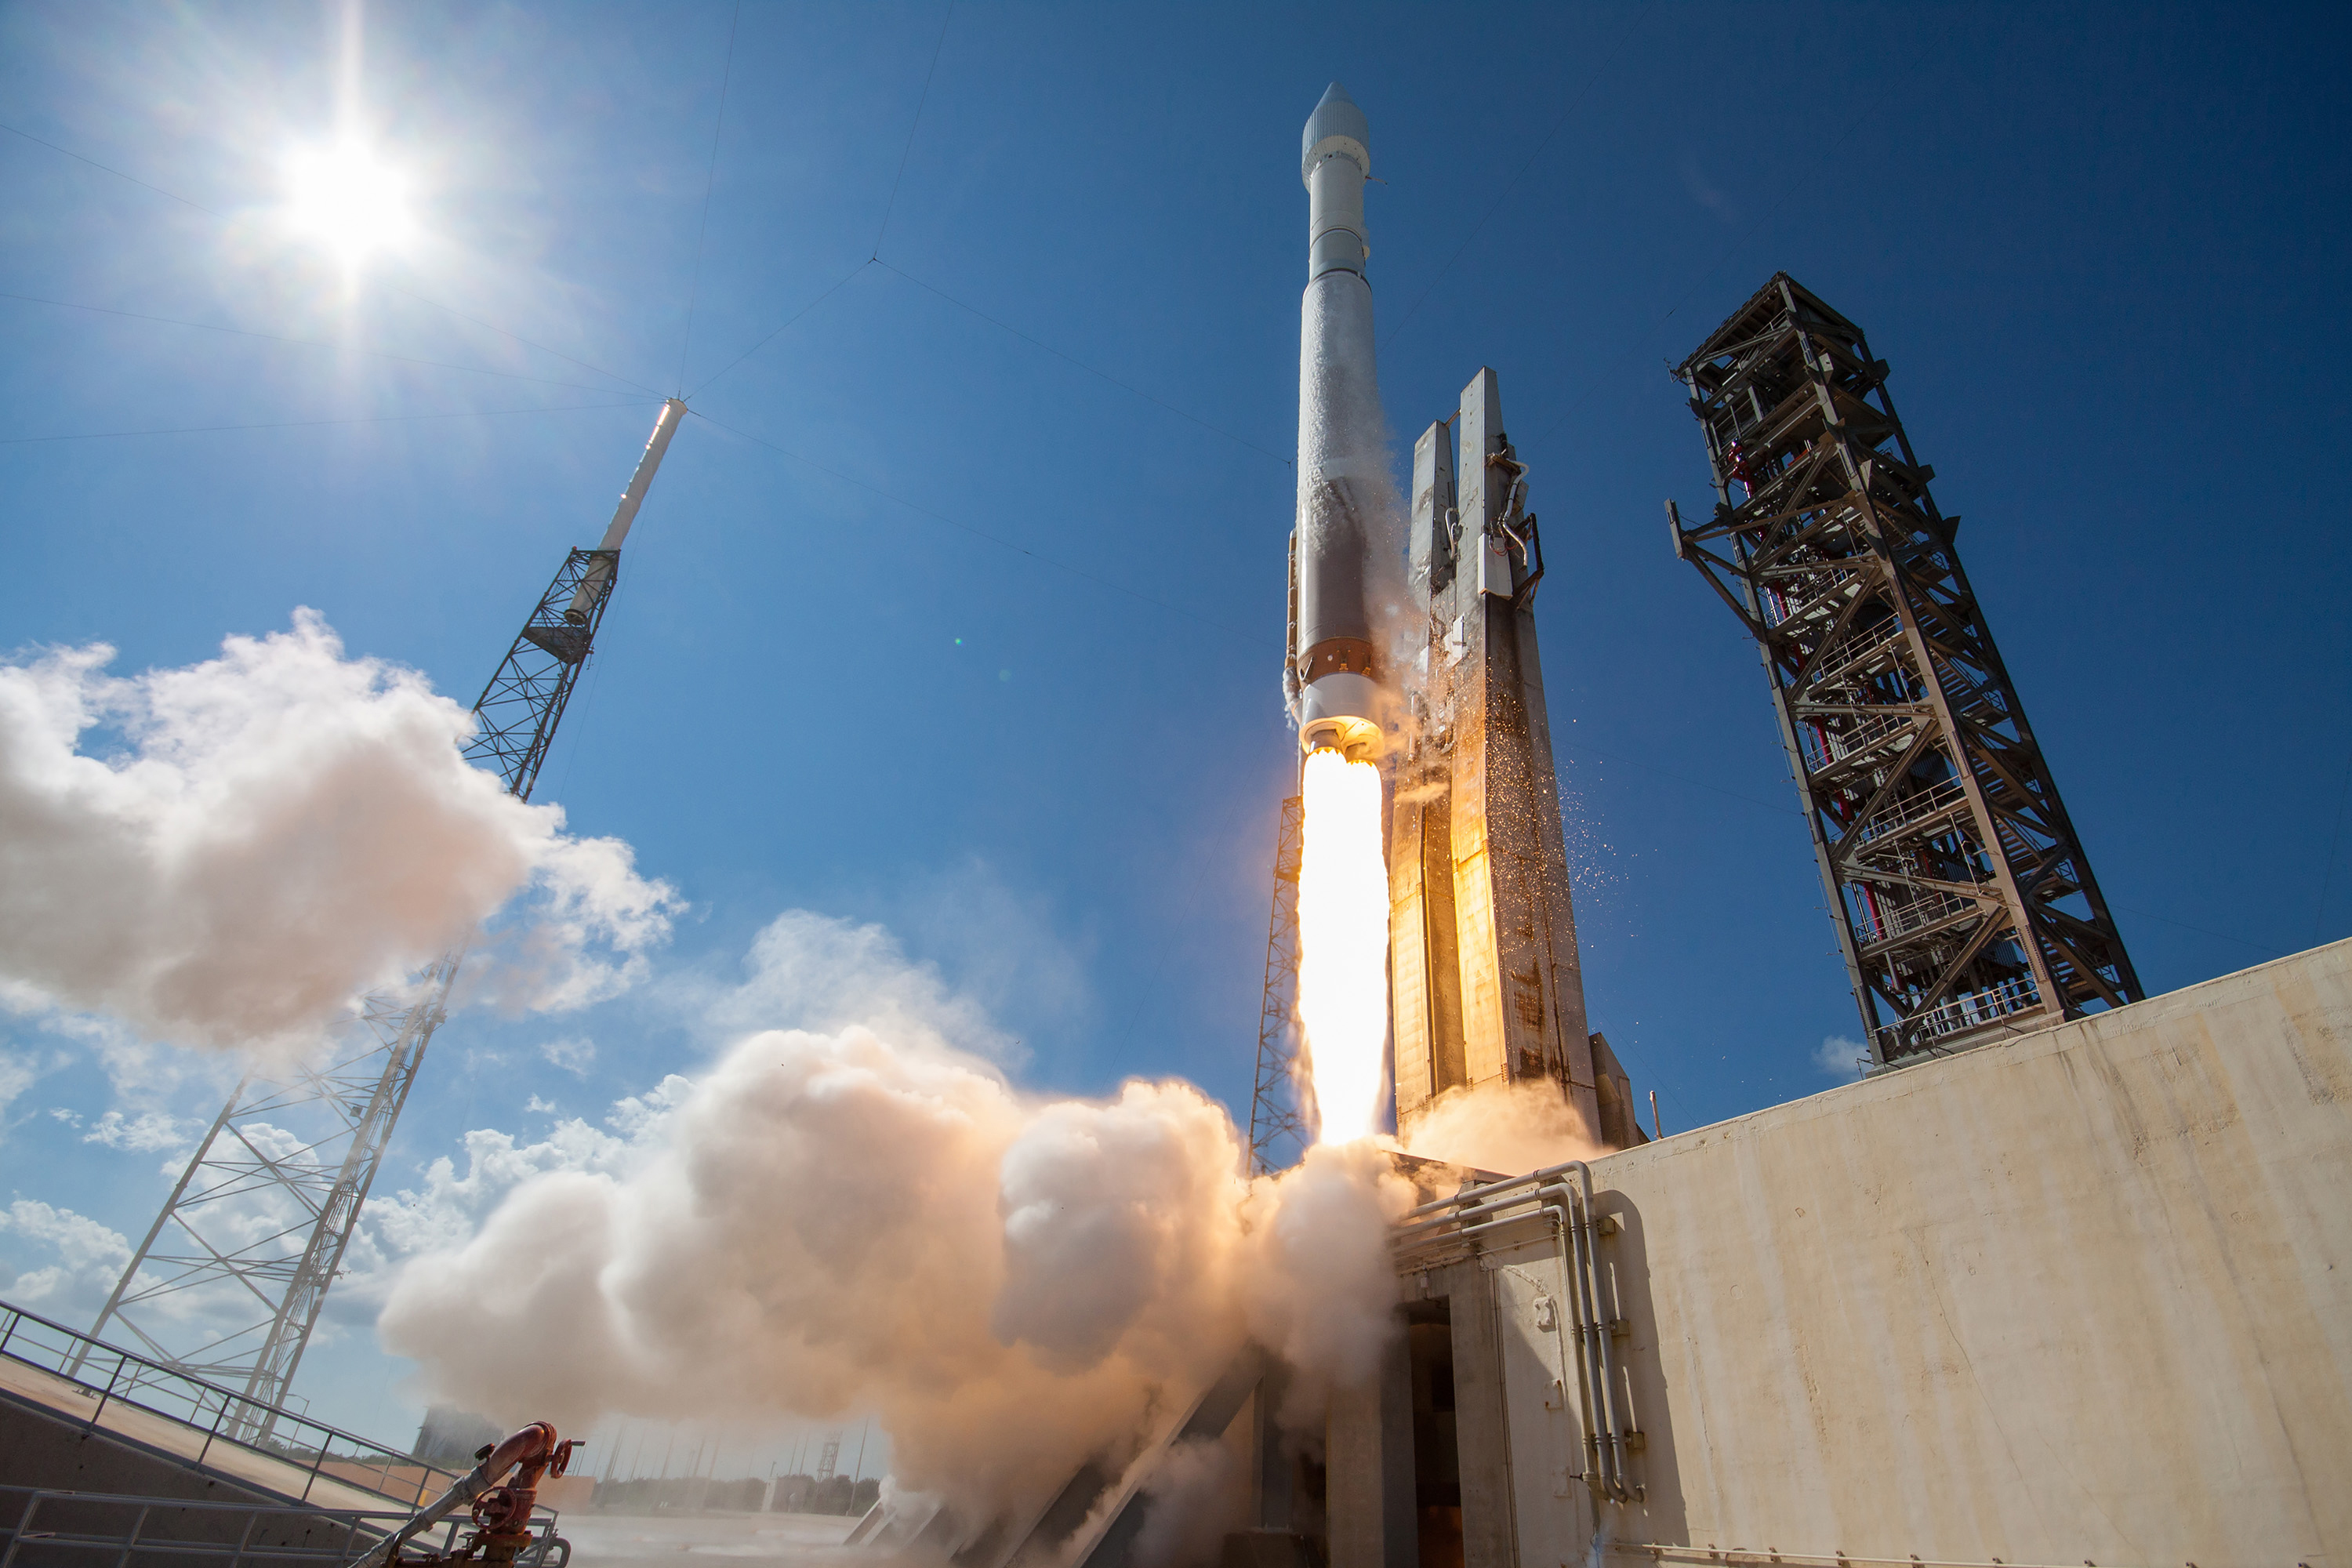 File photo of an Atlas 5 rocket launch. Credit: ULA